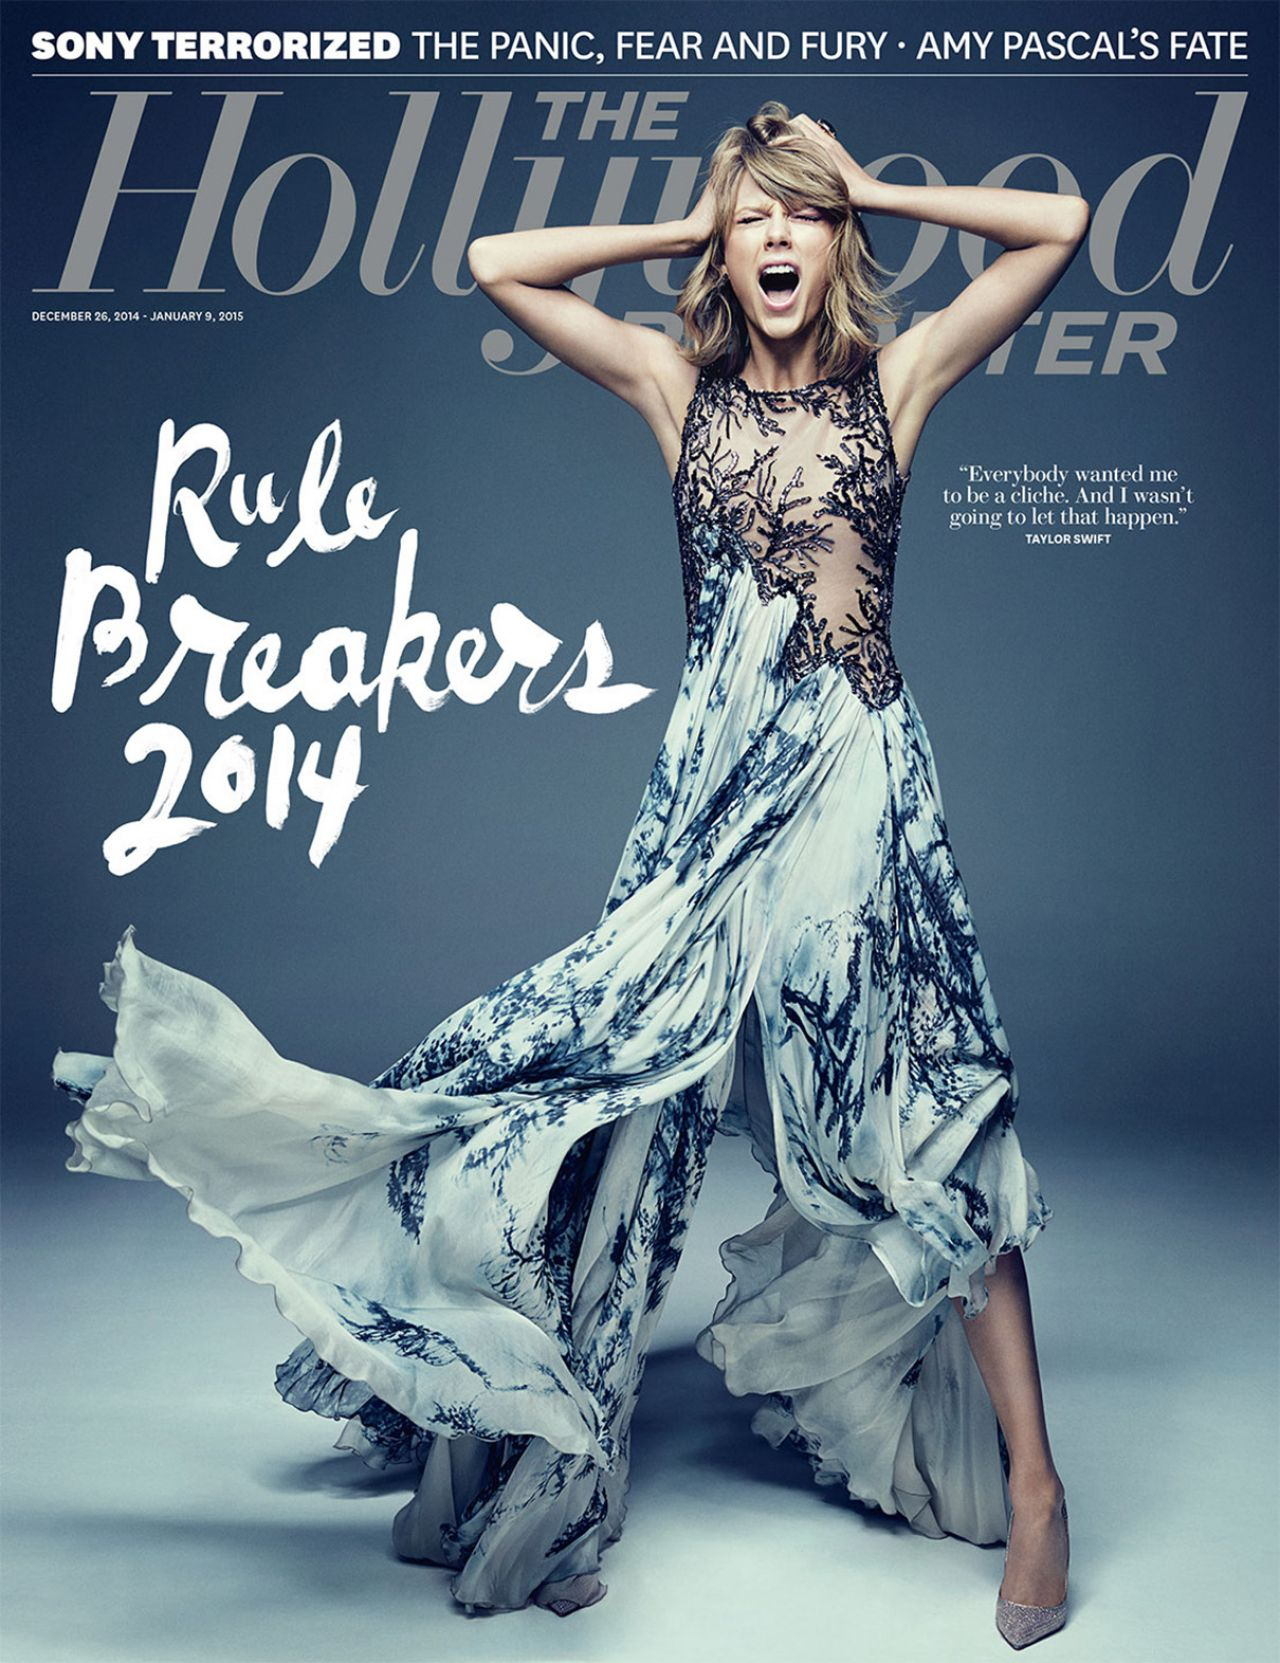 Taylor Swift - The Hollywood Reporter Magazine Cover - December 2014